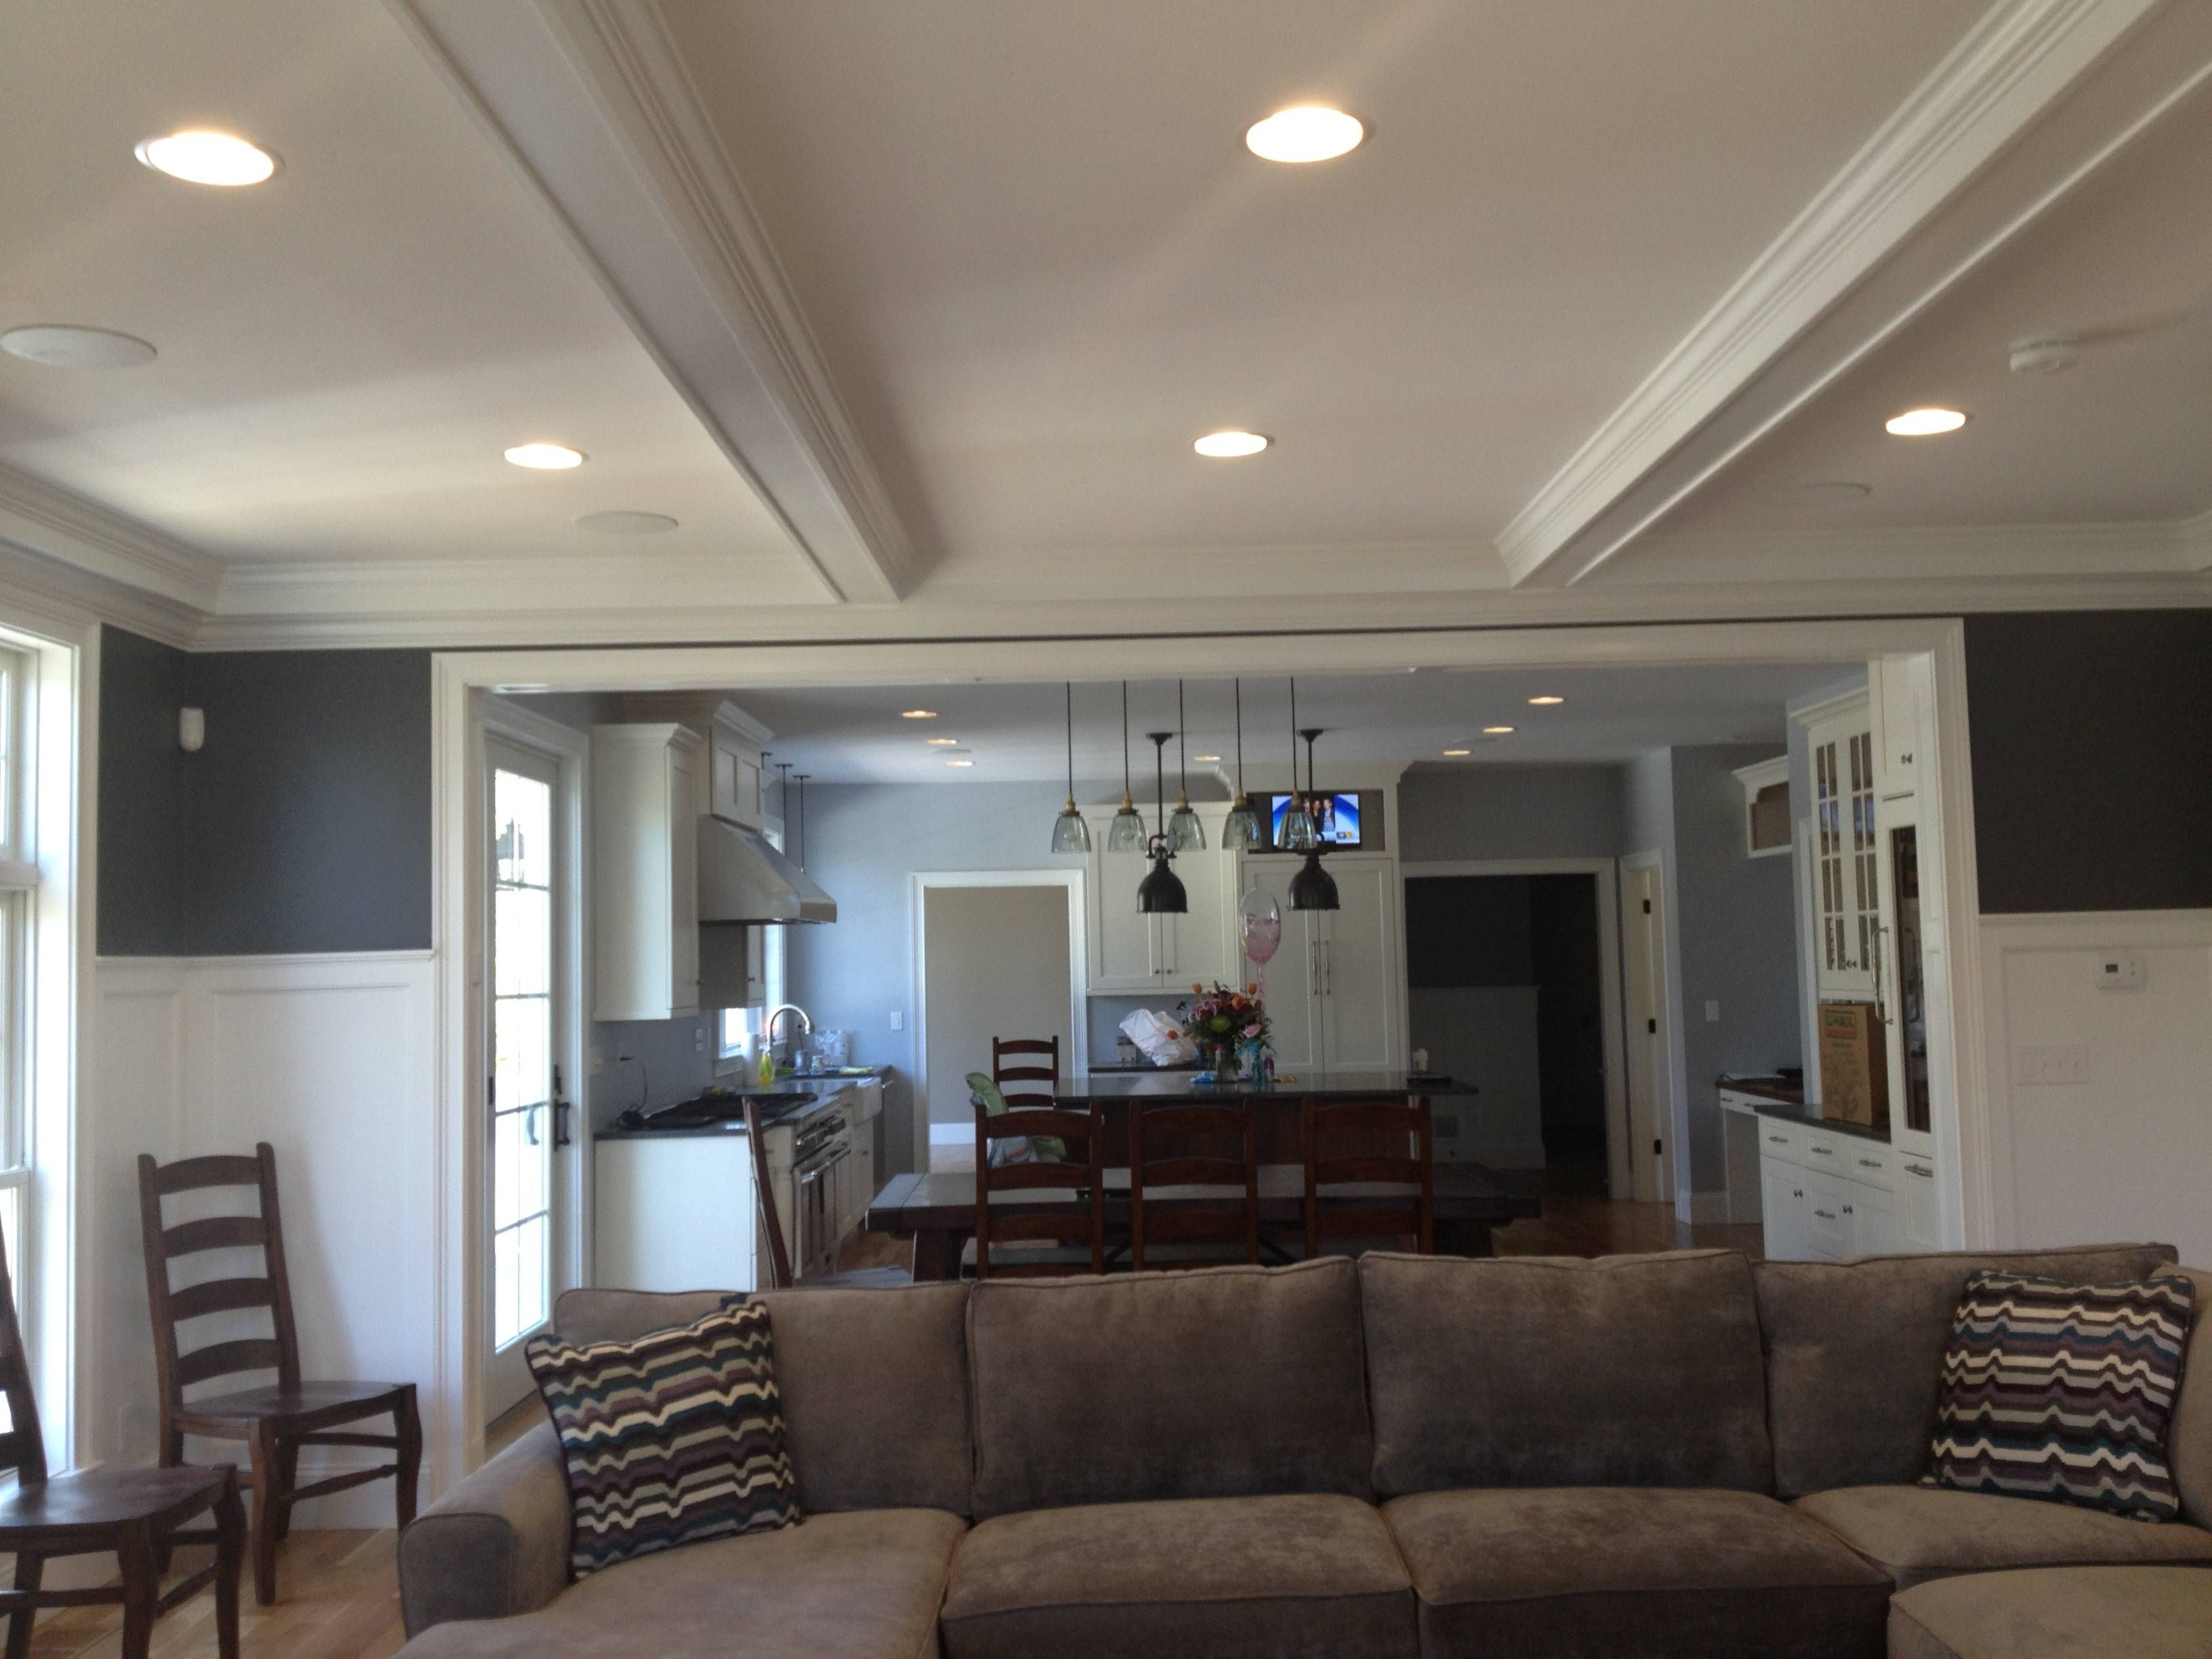 Family Room In Ceiling Speakers Family Room Ceiling Speakers House